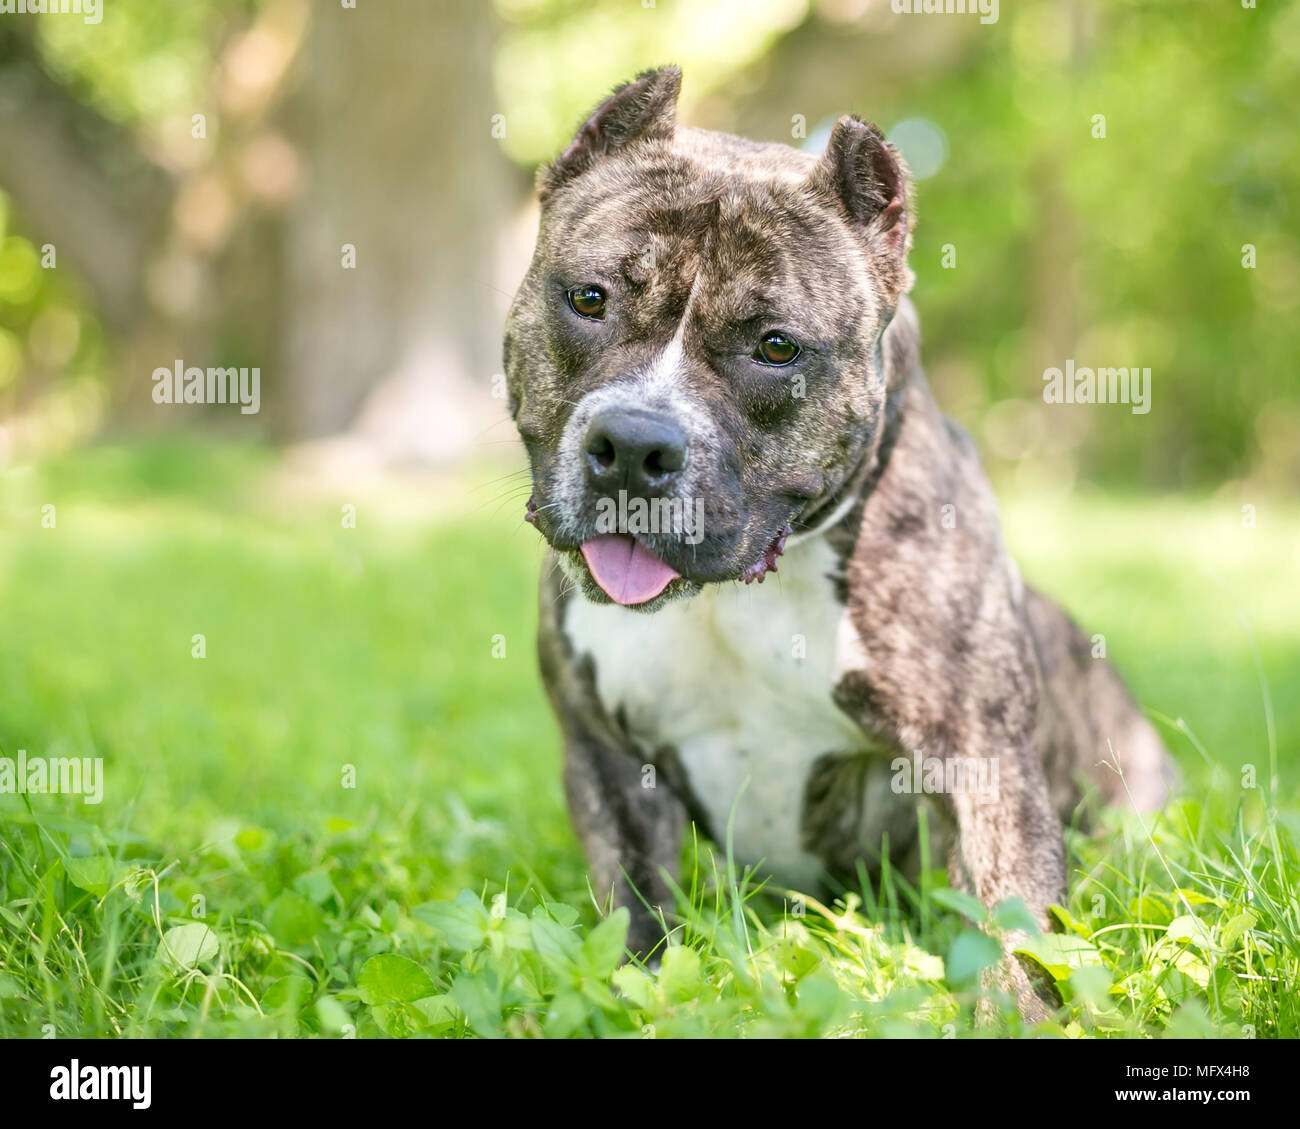 A friendly Staffordshire Bull Terrier / Pit Bull dog with cropped ears - Stock Image